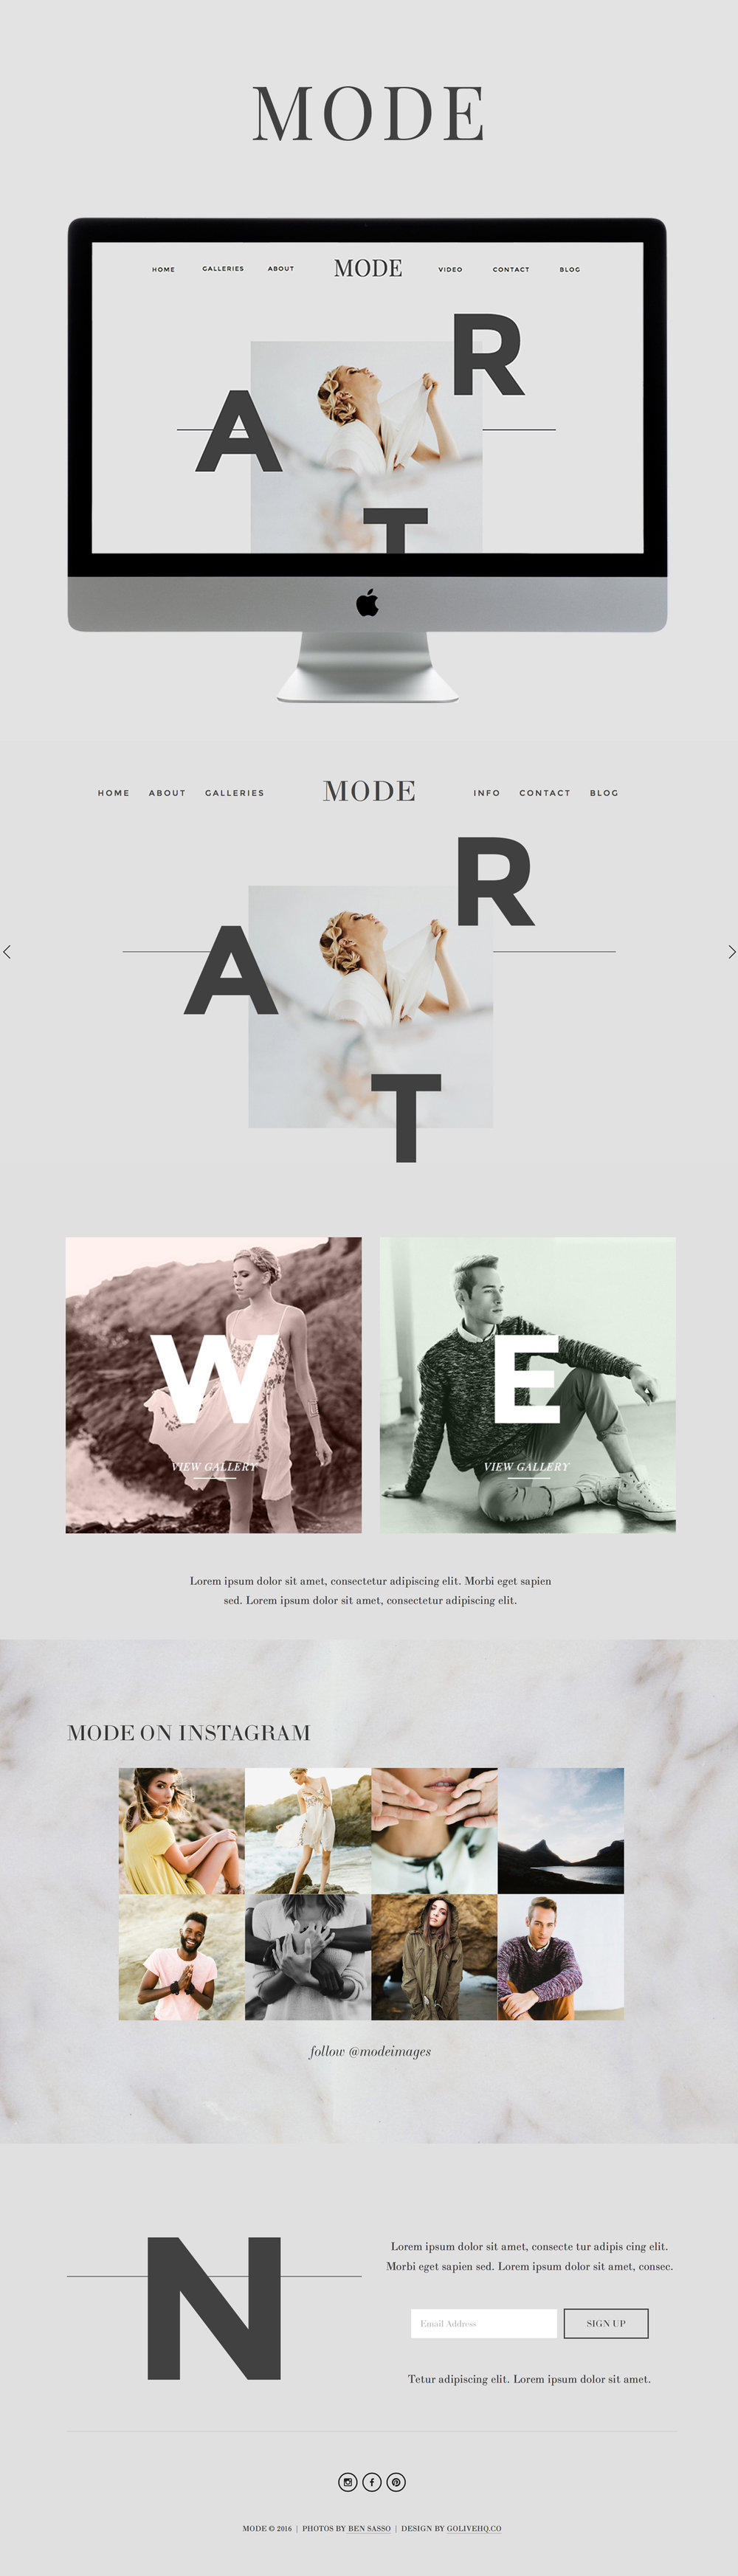 Squarespace template by Go Live Hq